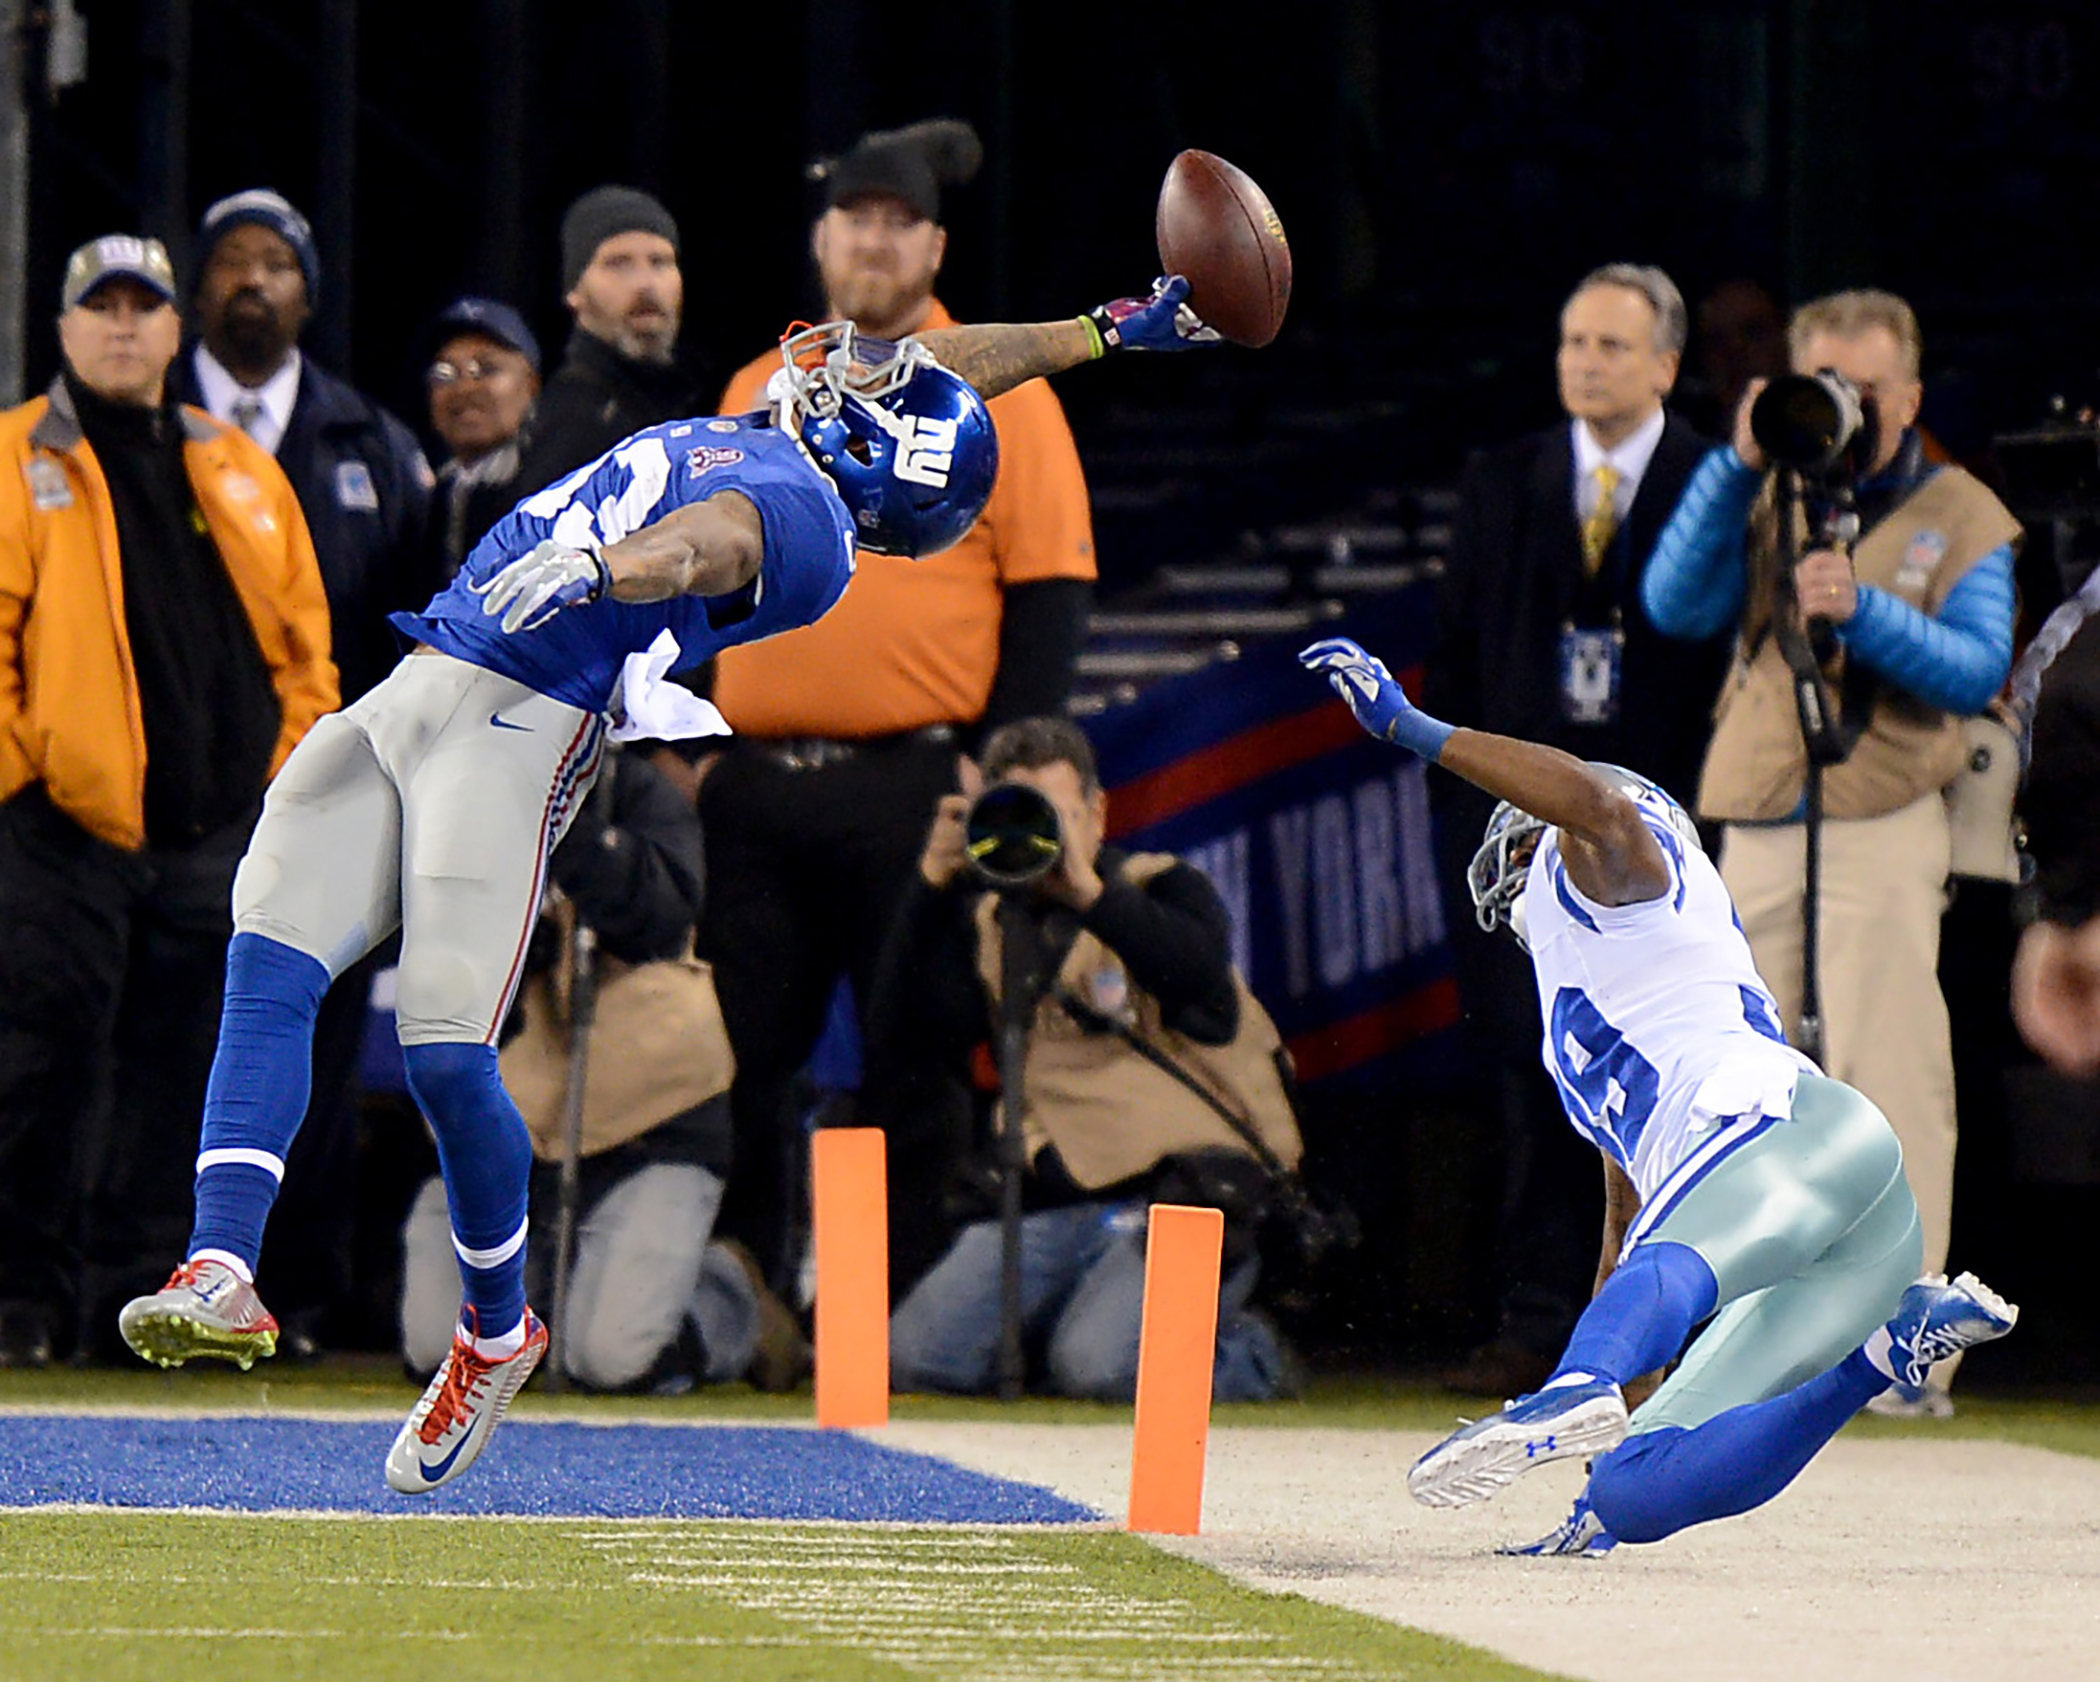 New York Giants wide receiver Odell Beckham makes stunning touchdown catch in the first half during game against the Dallas Cowboys. Sunday, November 23, 2014 at the MetLife Stadium in East Rutherford, New Jersey.